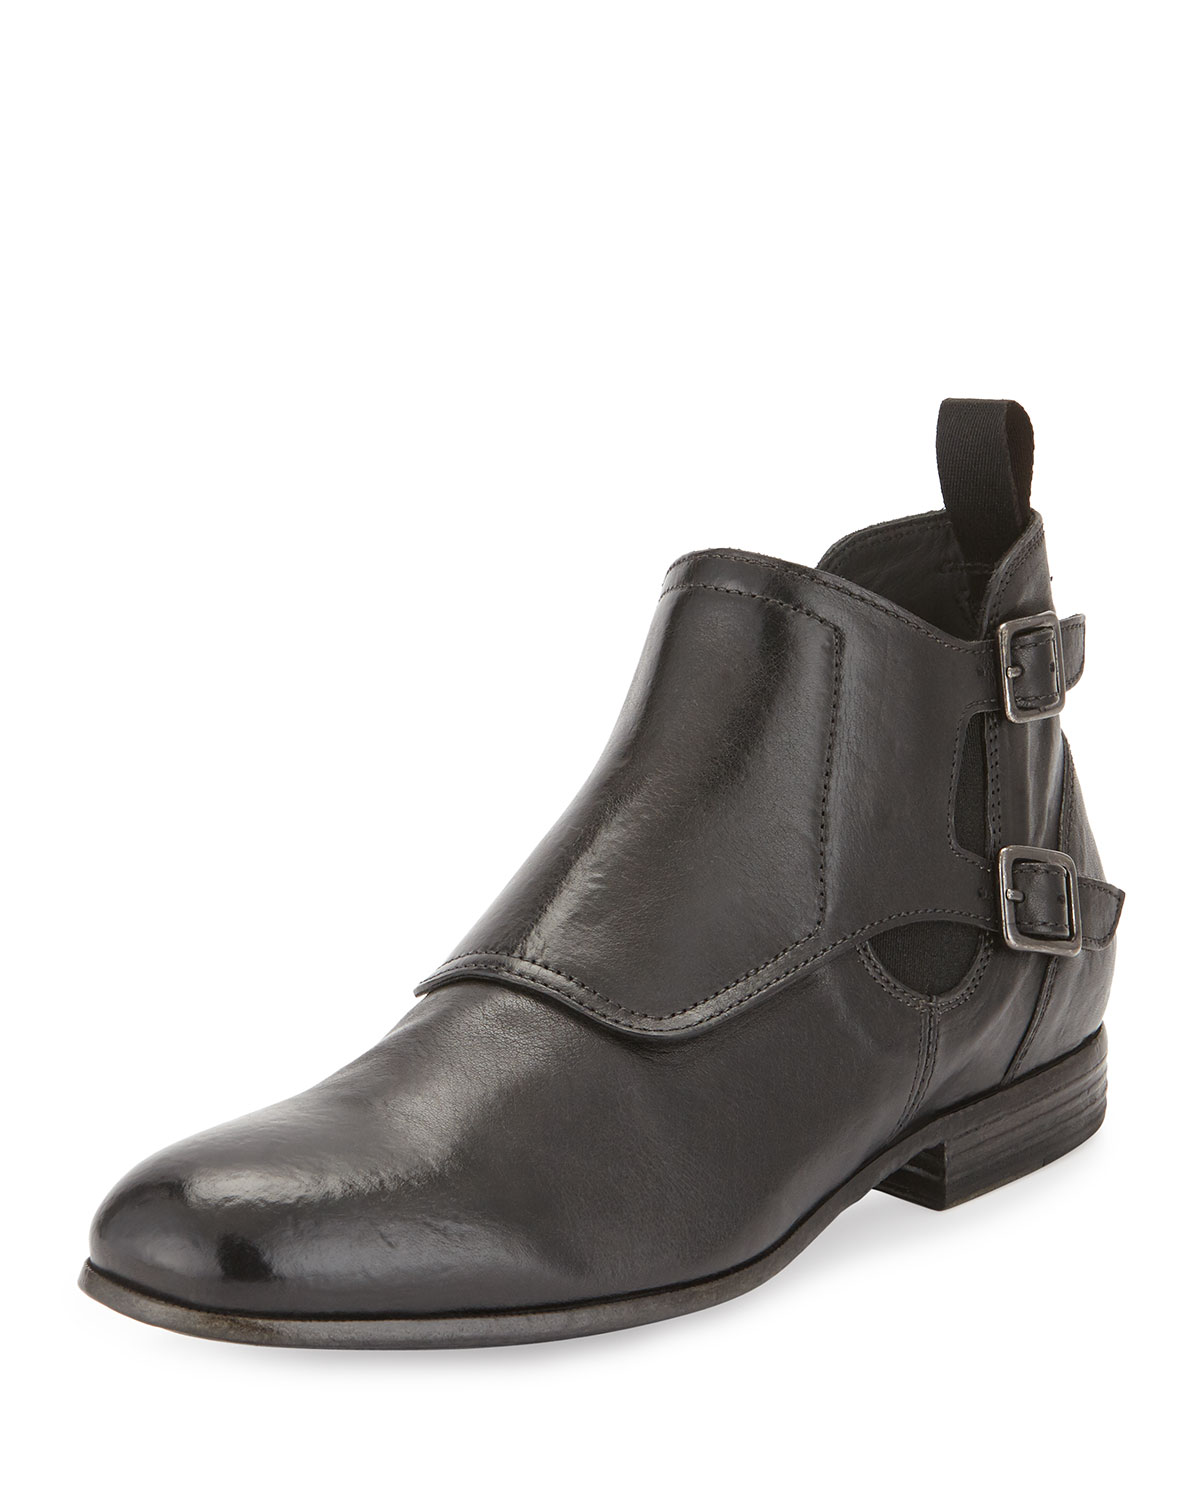 Leather Monk-Strap Boot